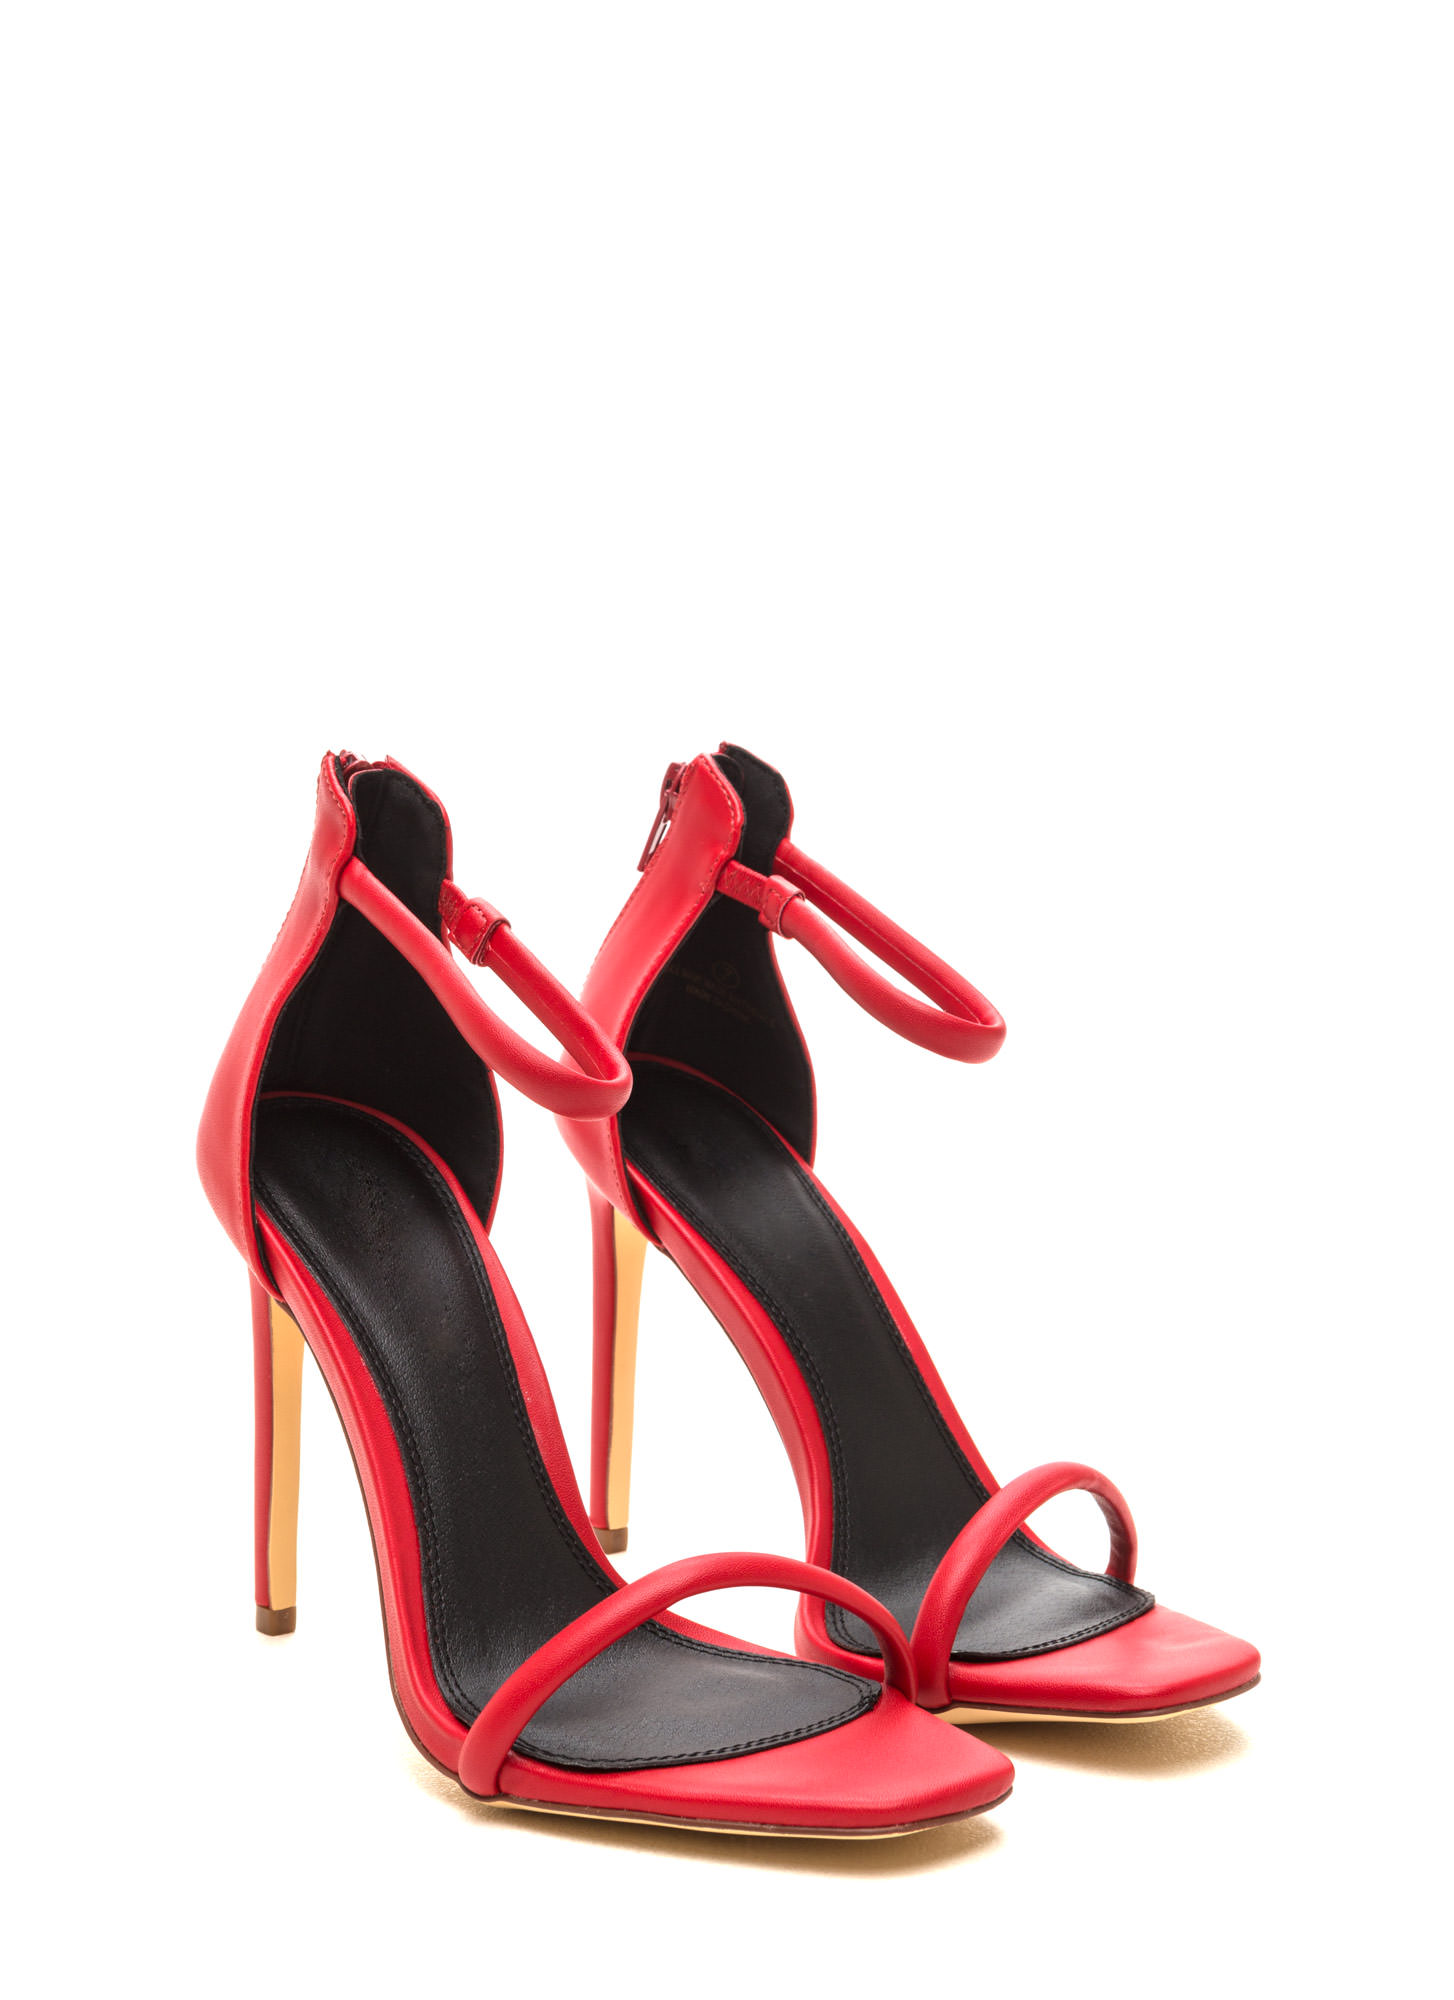 Just One Faux Leather Ankle Strap Heels RED